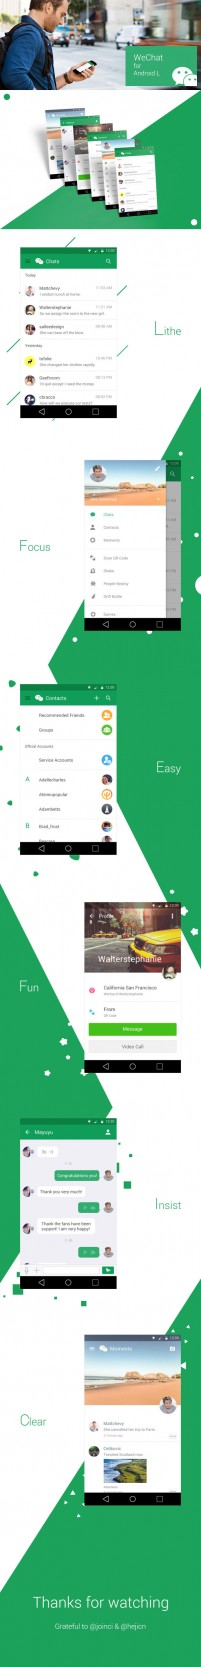 Android L style based on a complete micro channel design PSD APP free download